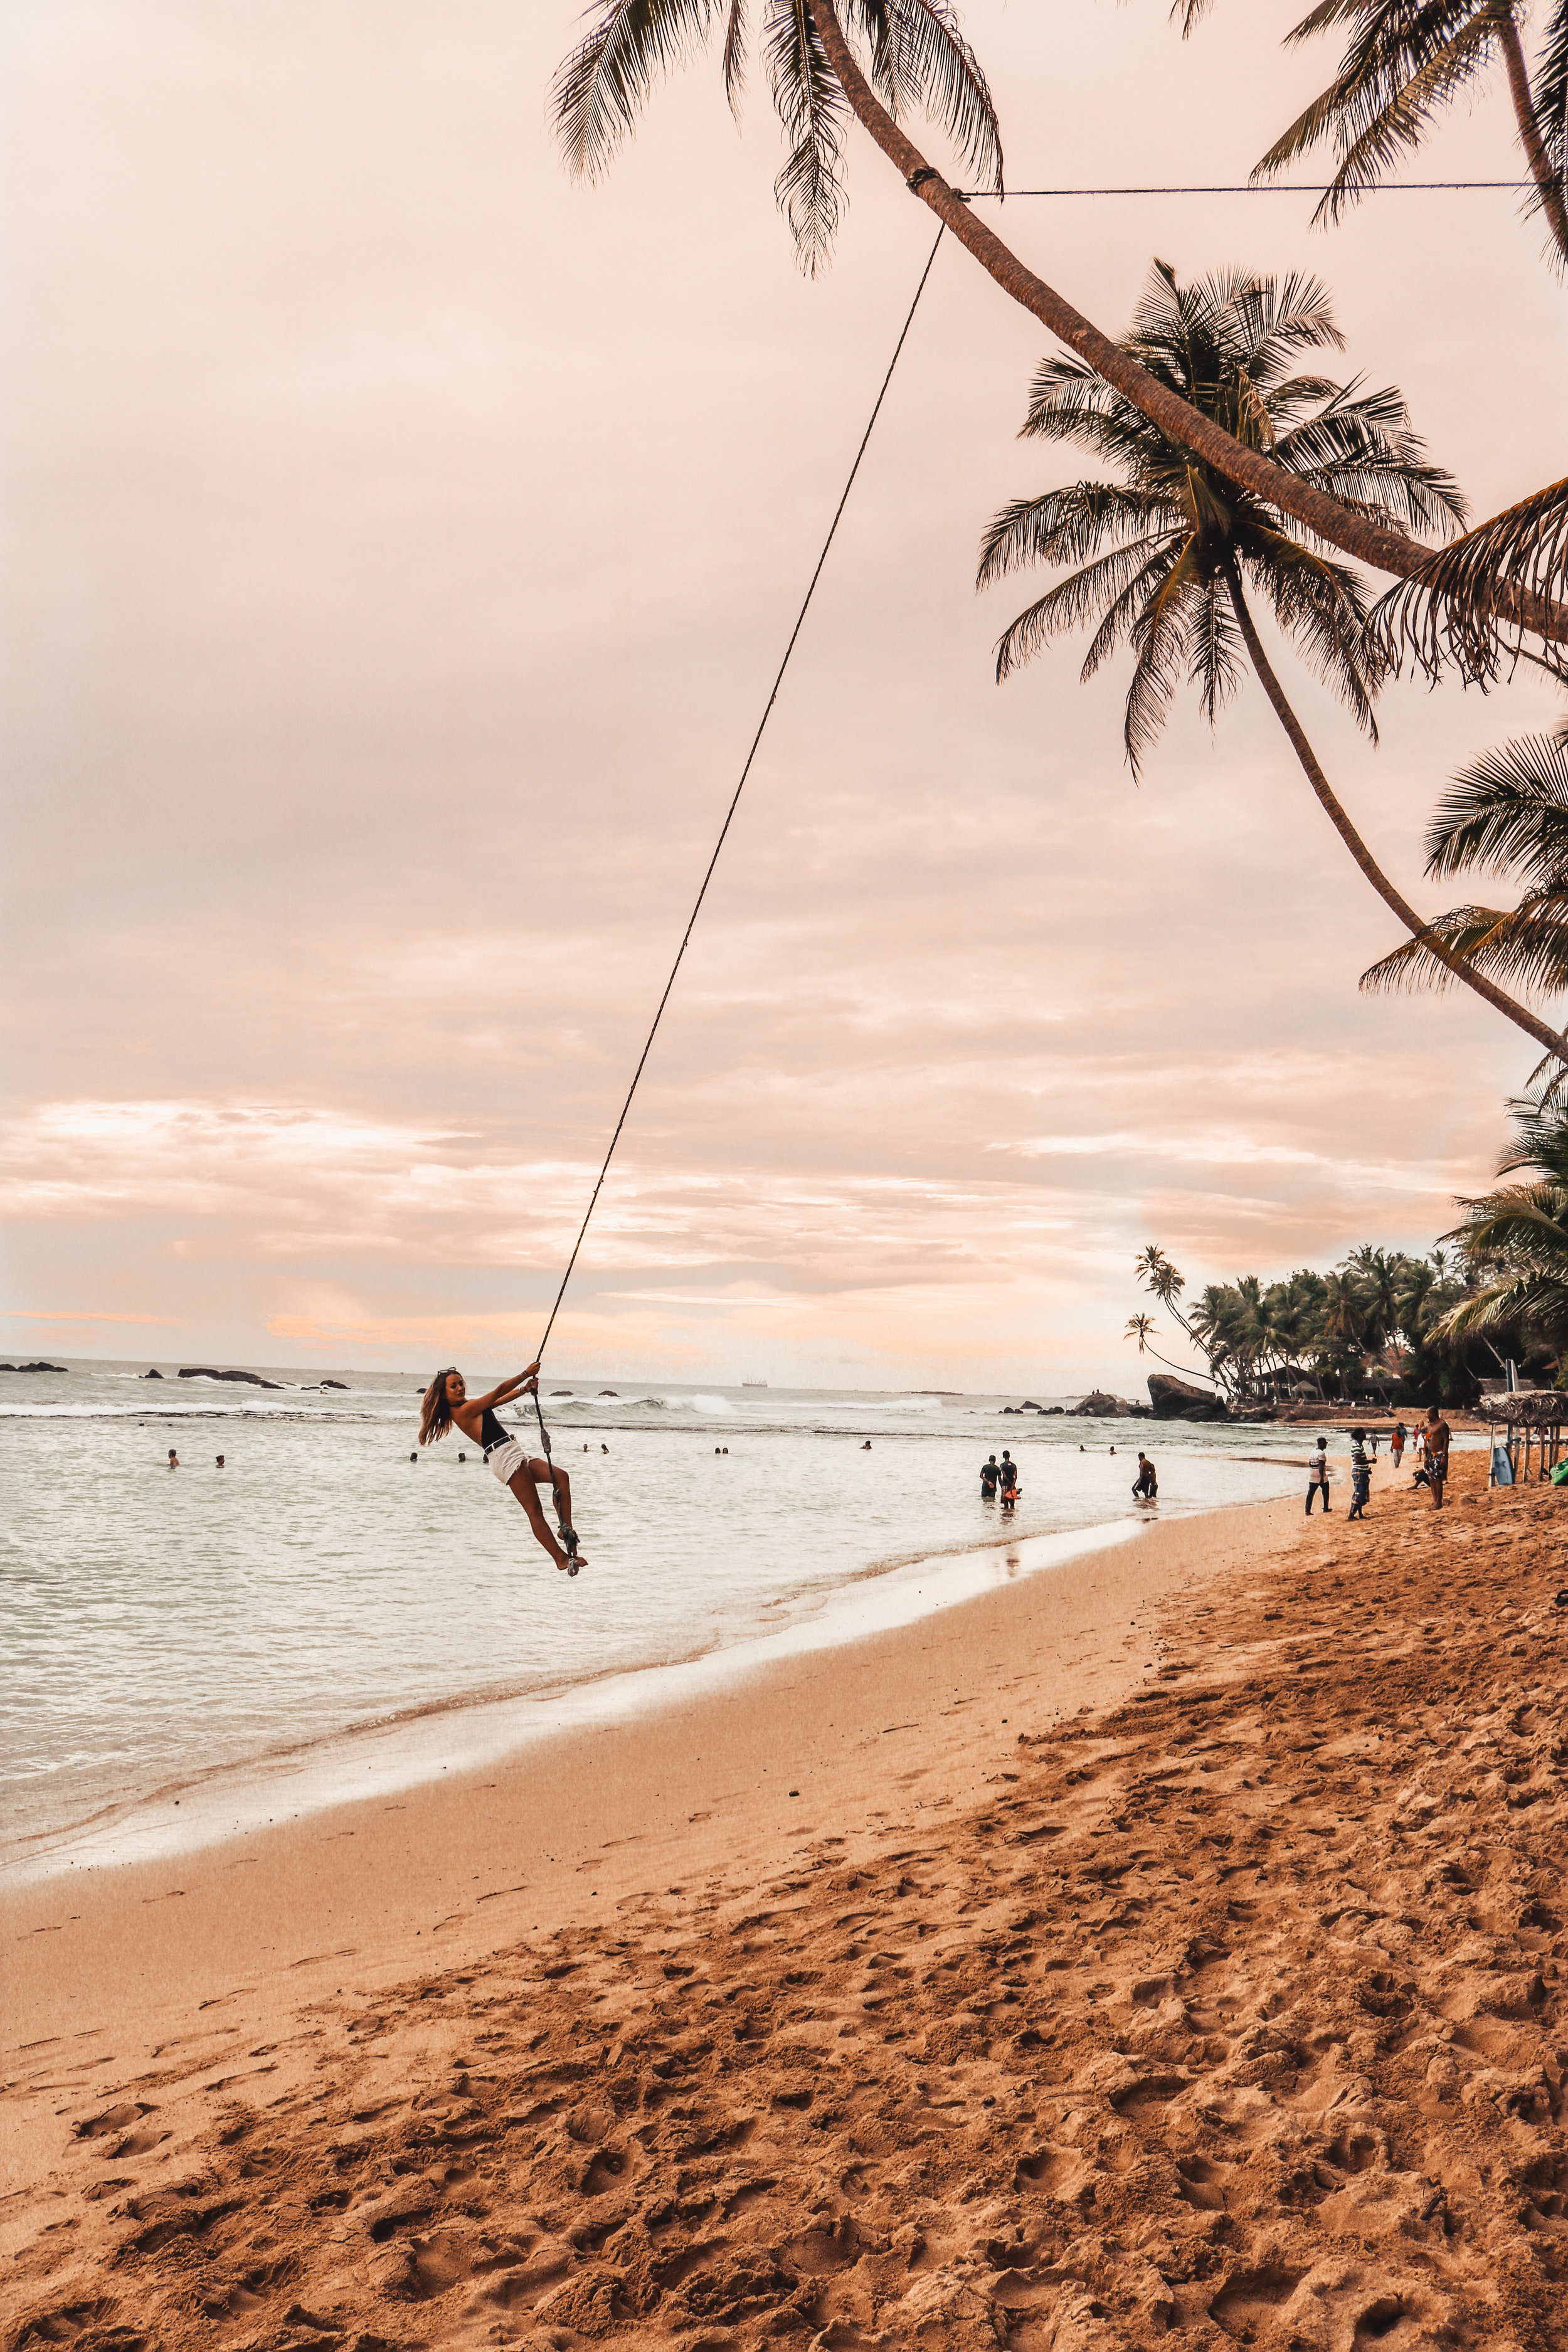 sri-lanka-beaches.jpg